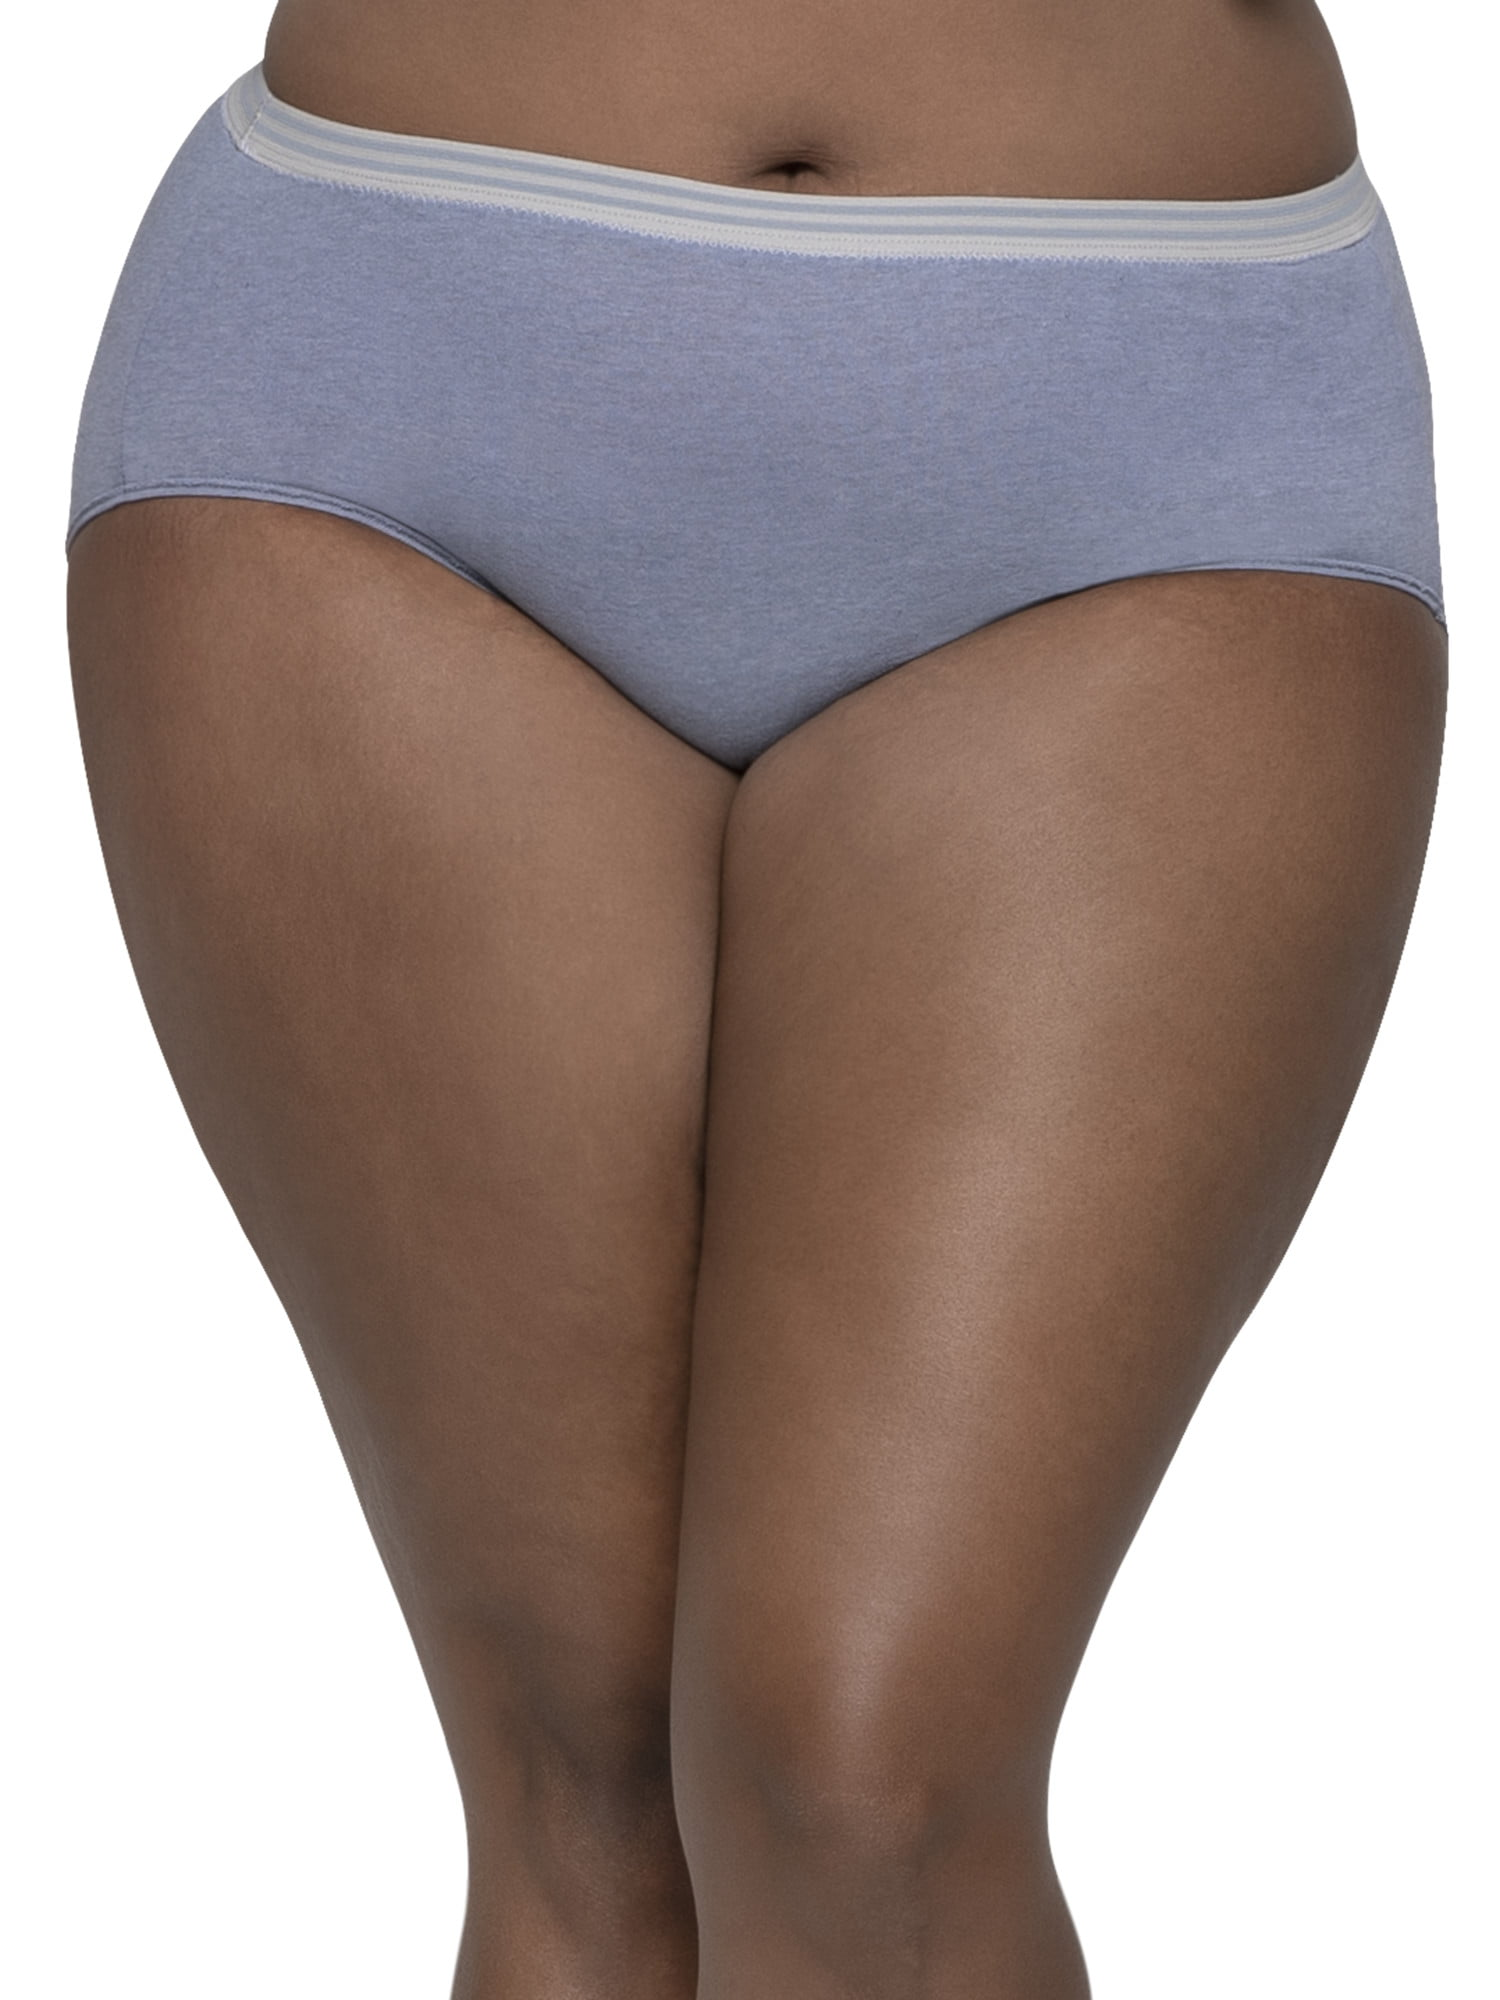 Fruit of the loom Women low rise briefs heather 8 pack assorted colors